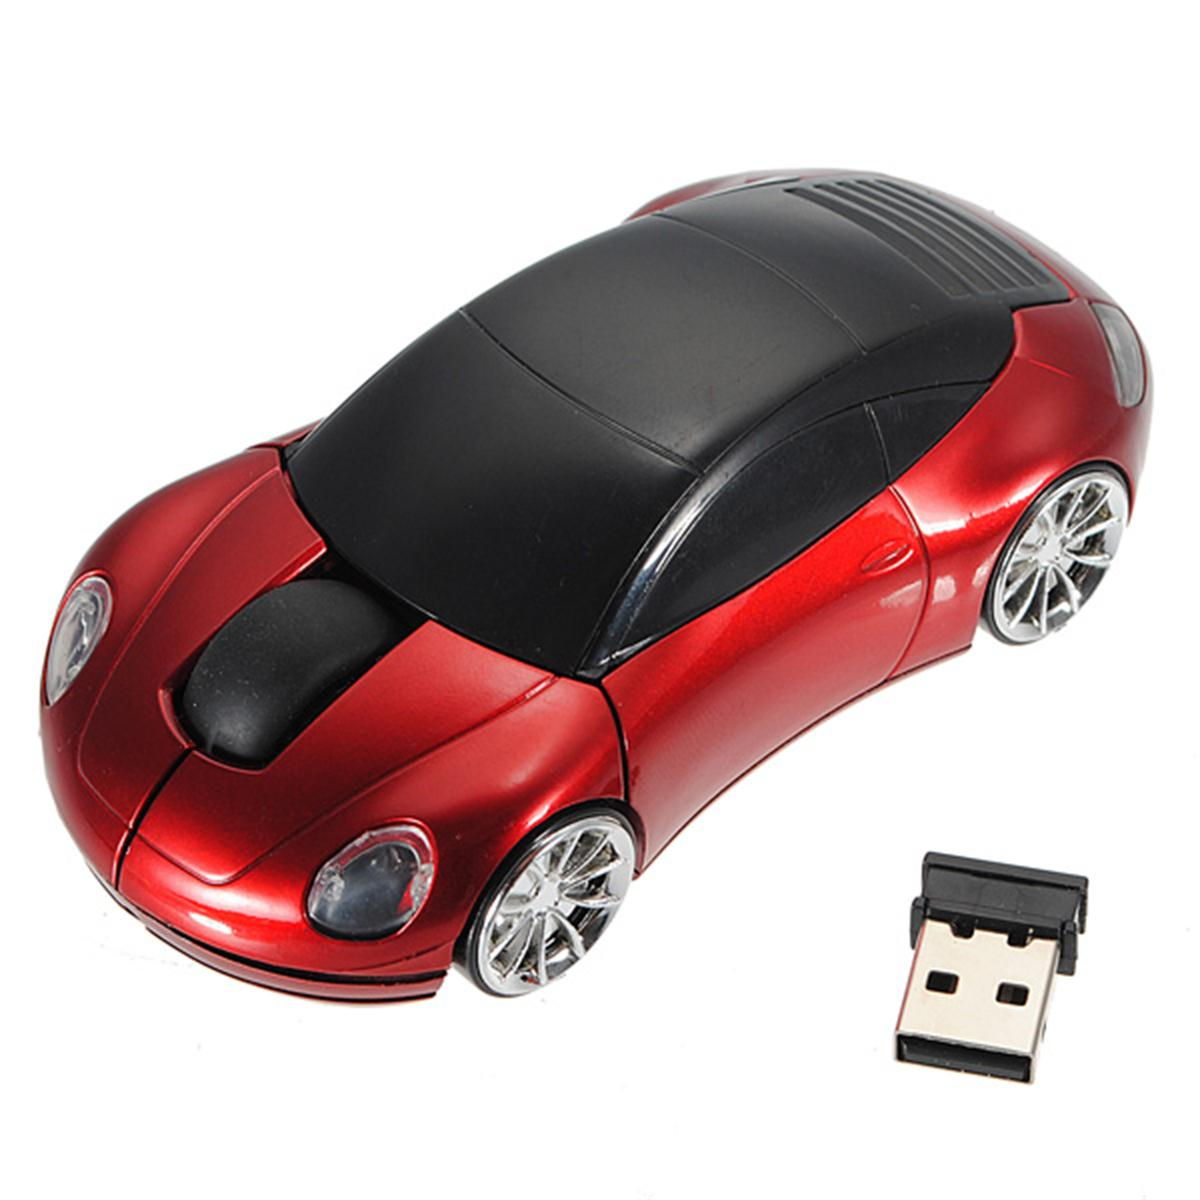 led 2 4ghz souris sans fil optique voiture car 1600dpi usb wireless mouse laptop ebay. Black Bedroom Furniture Sets. Home Design Ideas